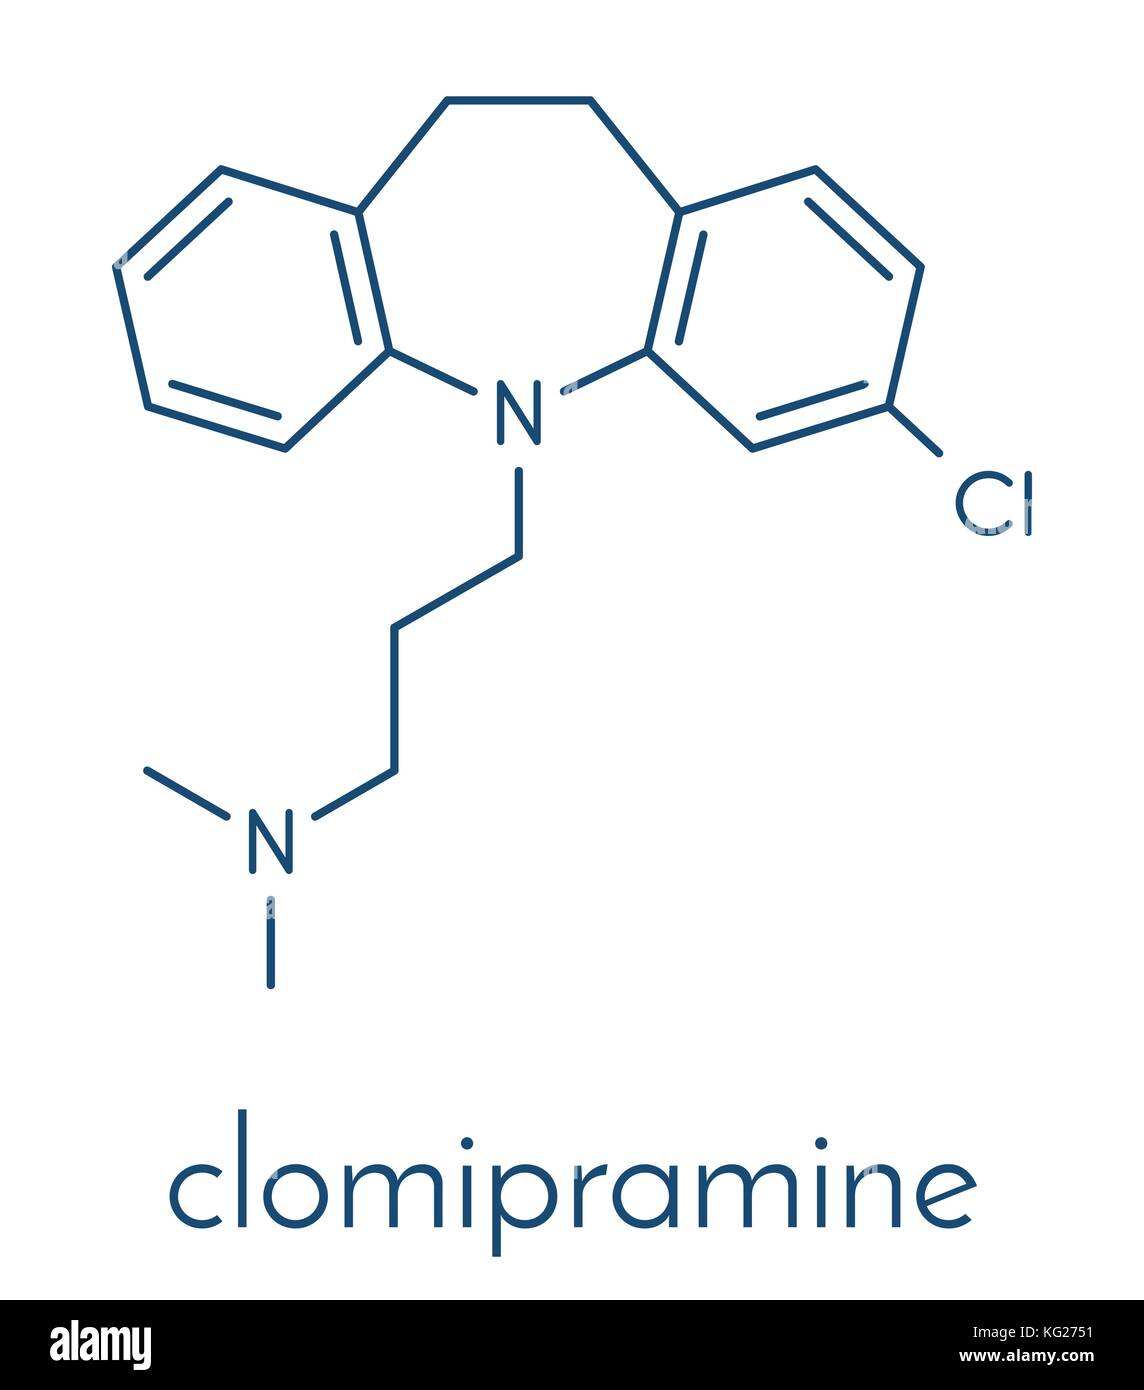 Clomipramine tricyclic antidepressant drug molecule. Used in treatment of depression, obsessive-compulsive disorder, - Stock Vector